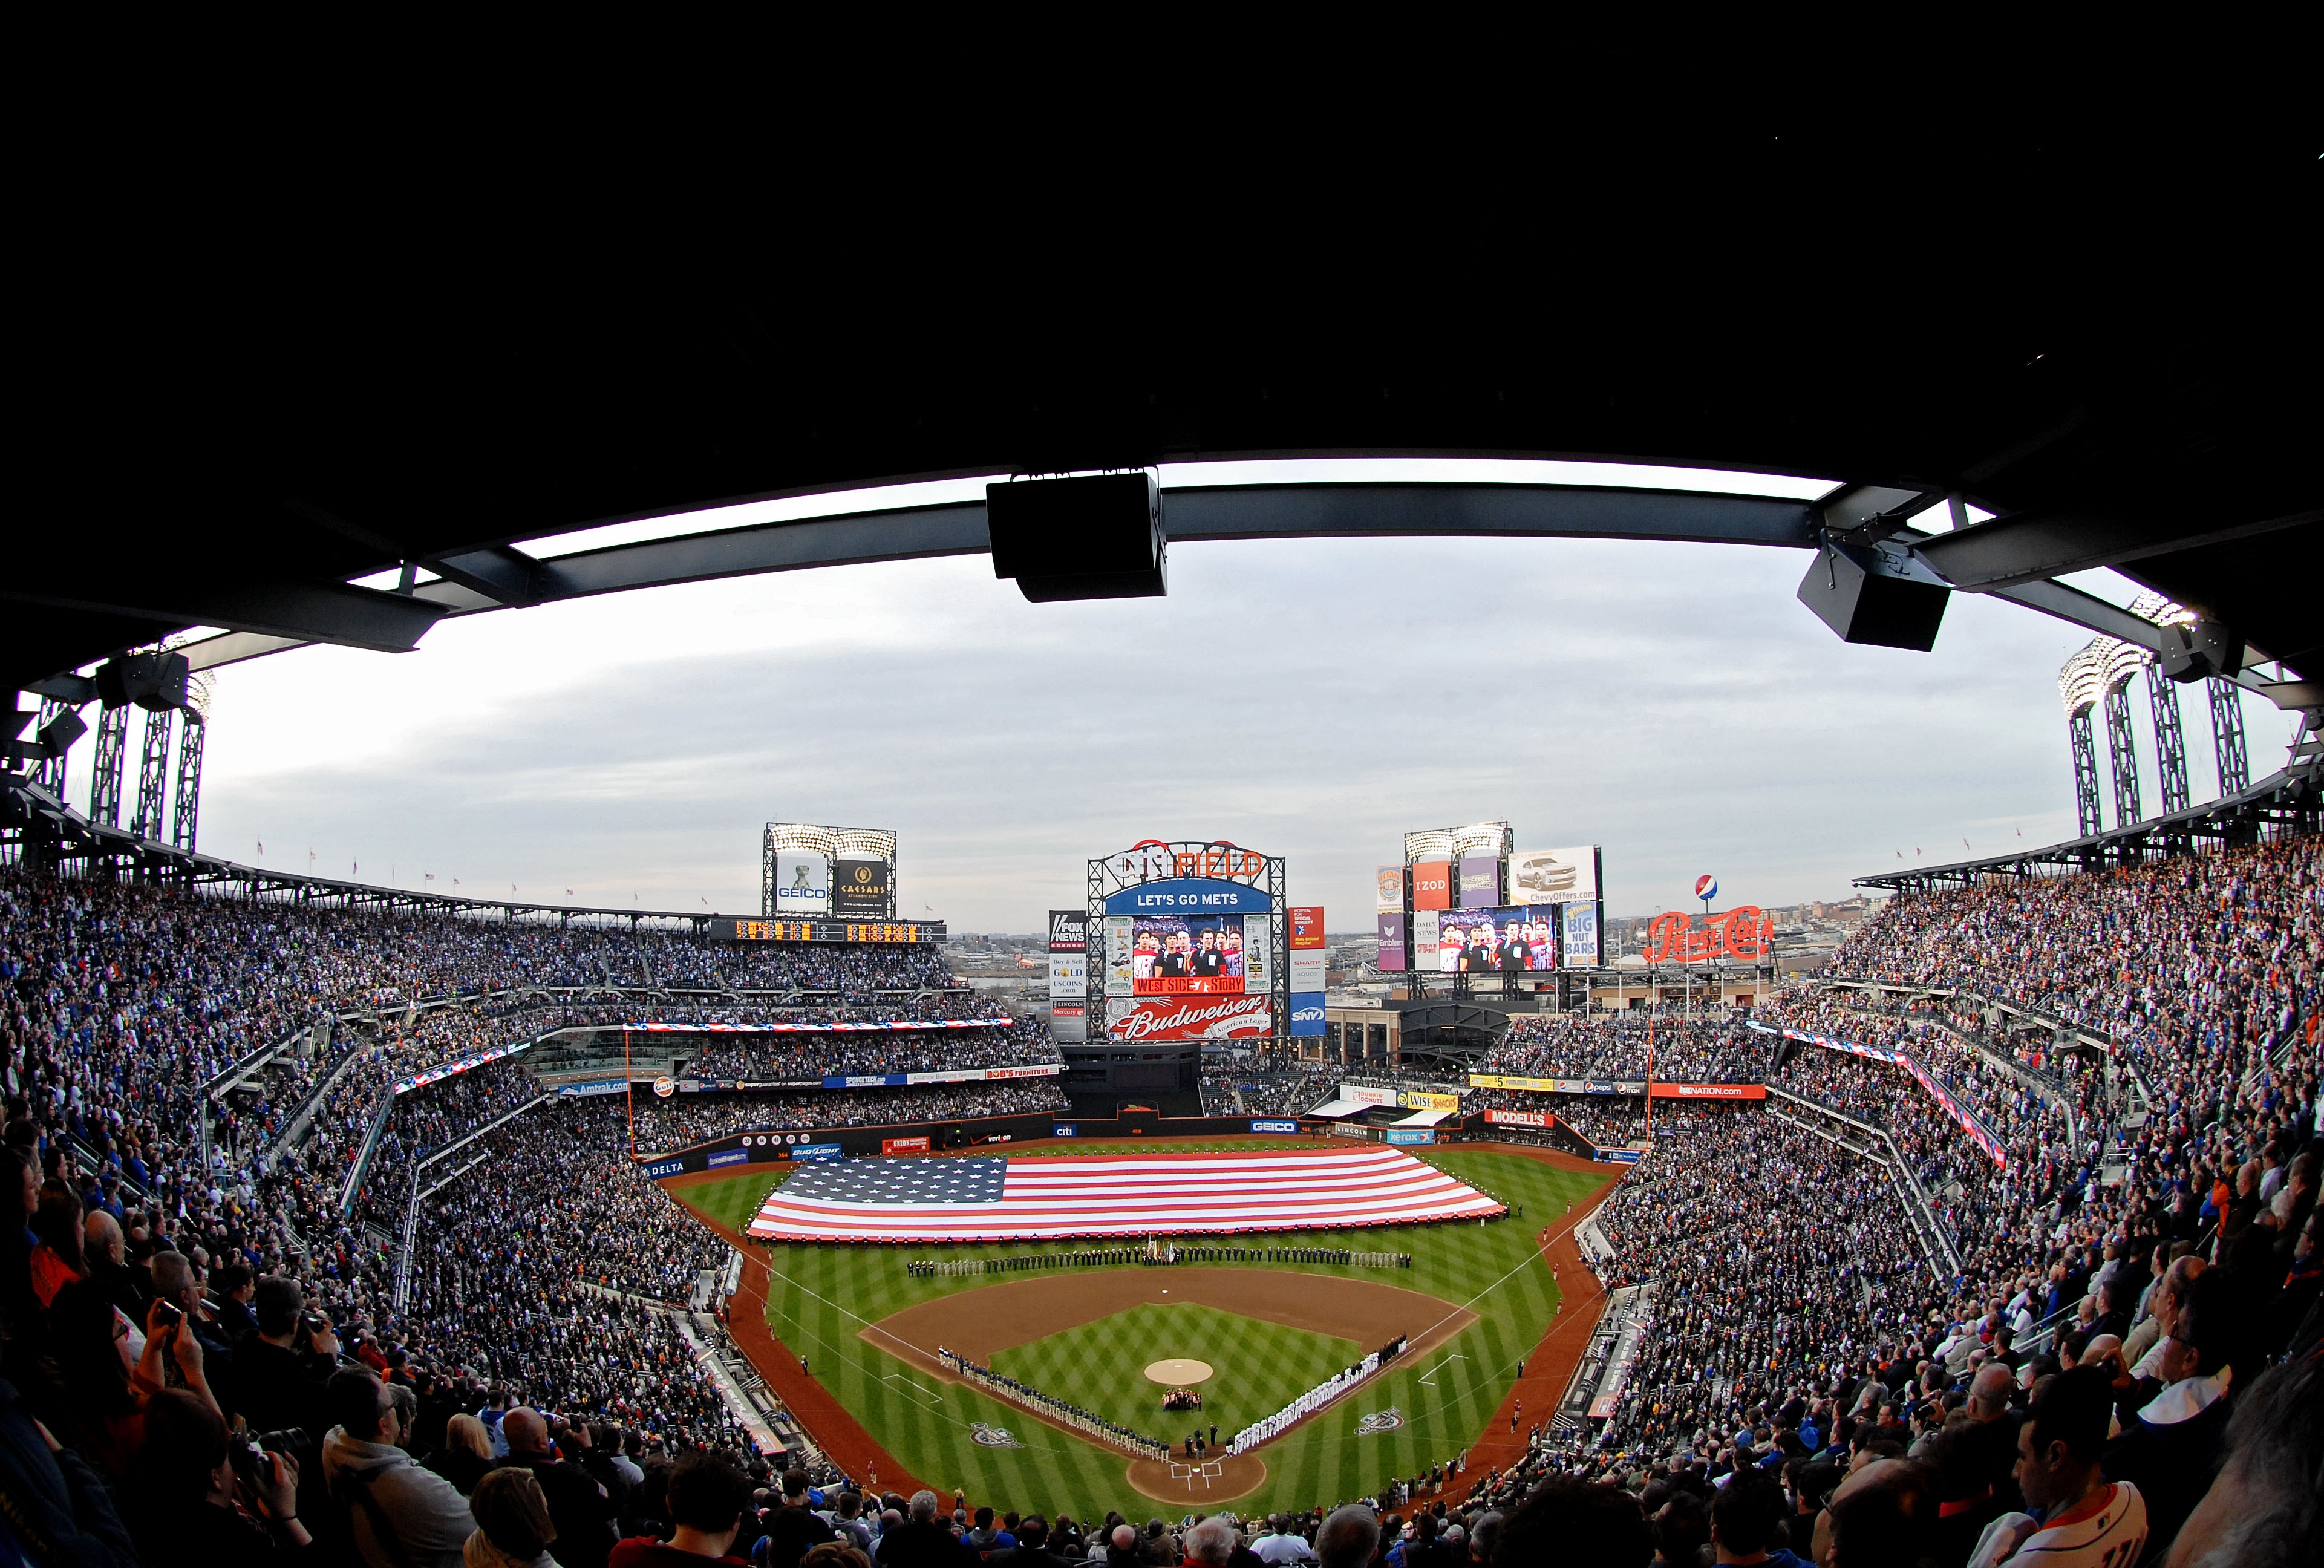 NEW YORK - APRIL 13: Members of the U.S. military hold a giant flag on the field as the National Anthem is performed prior to the start of the opening day game between the San Diego Padres and the New York Mets at Citi Field on April 13, 2009 in the Flush